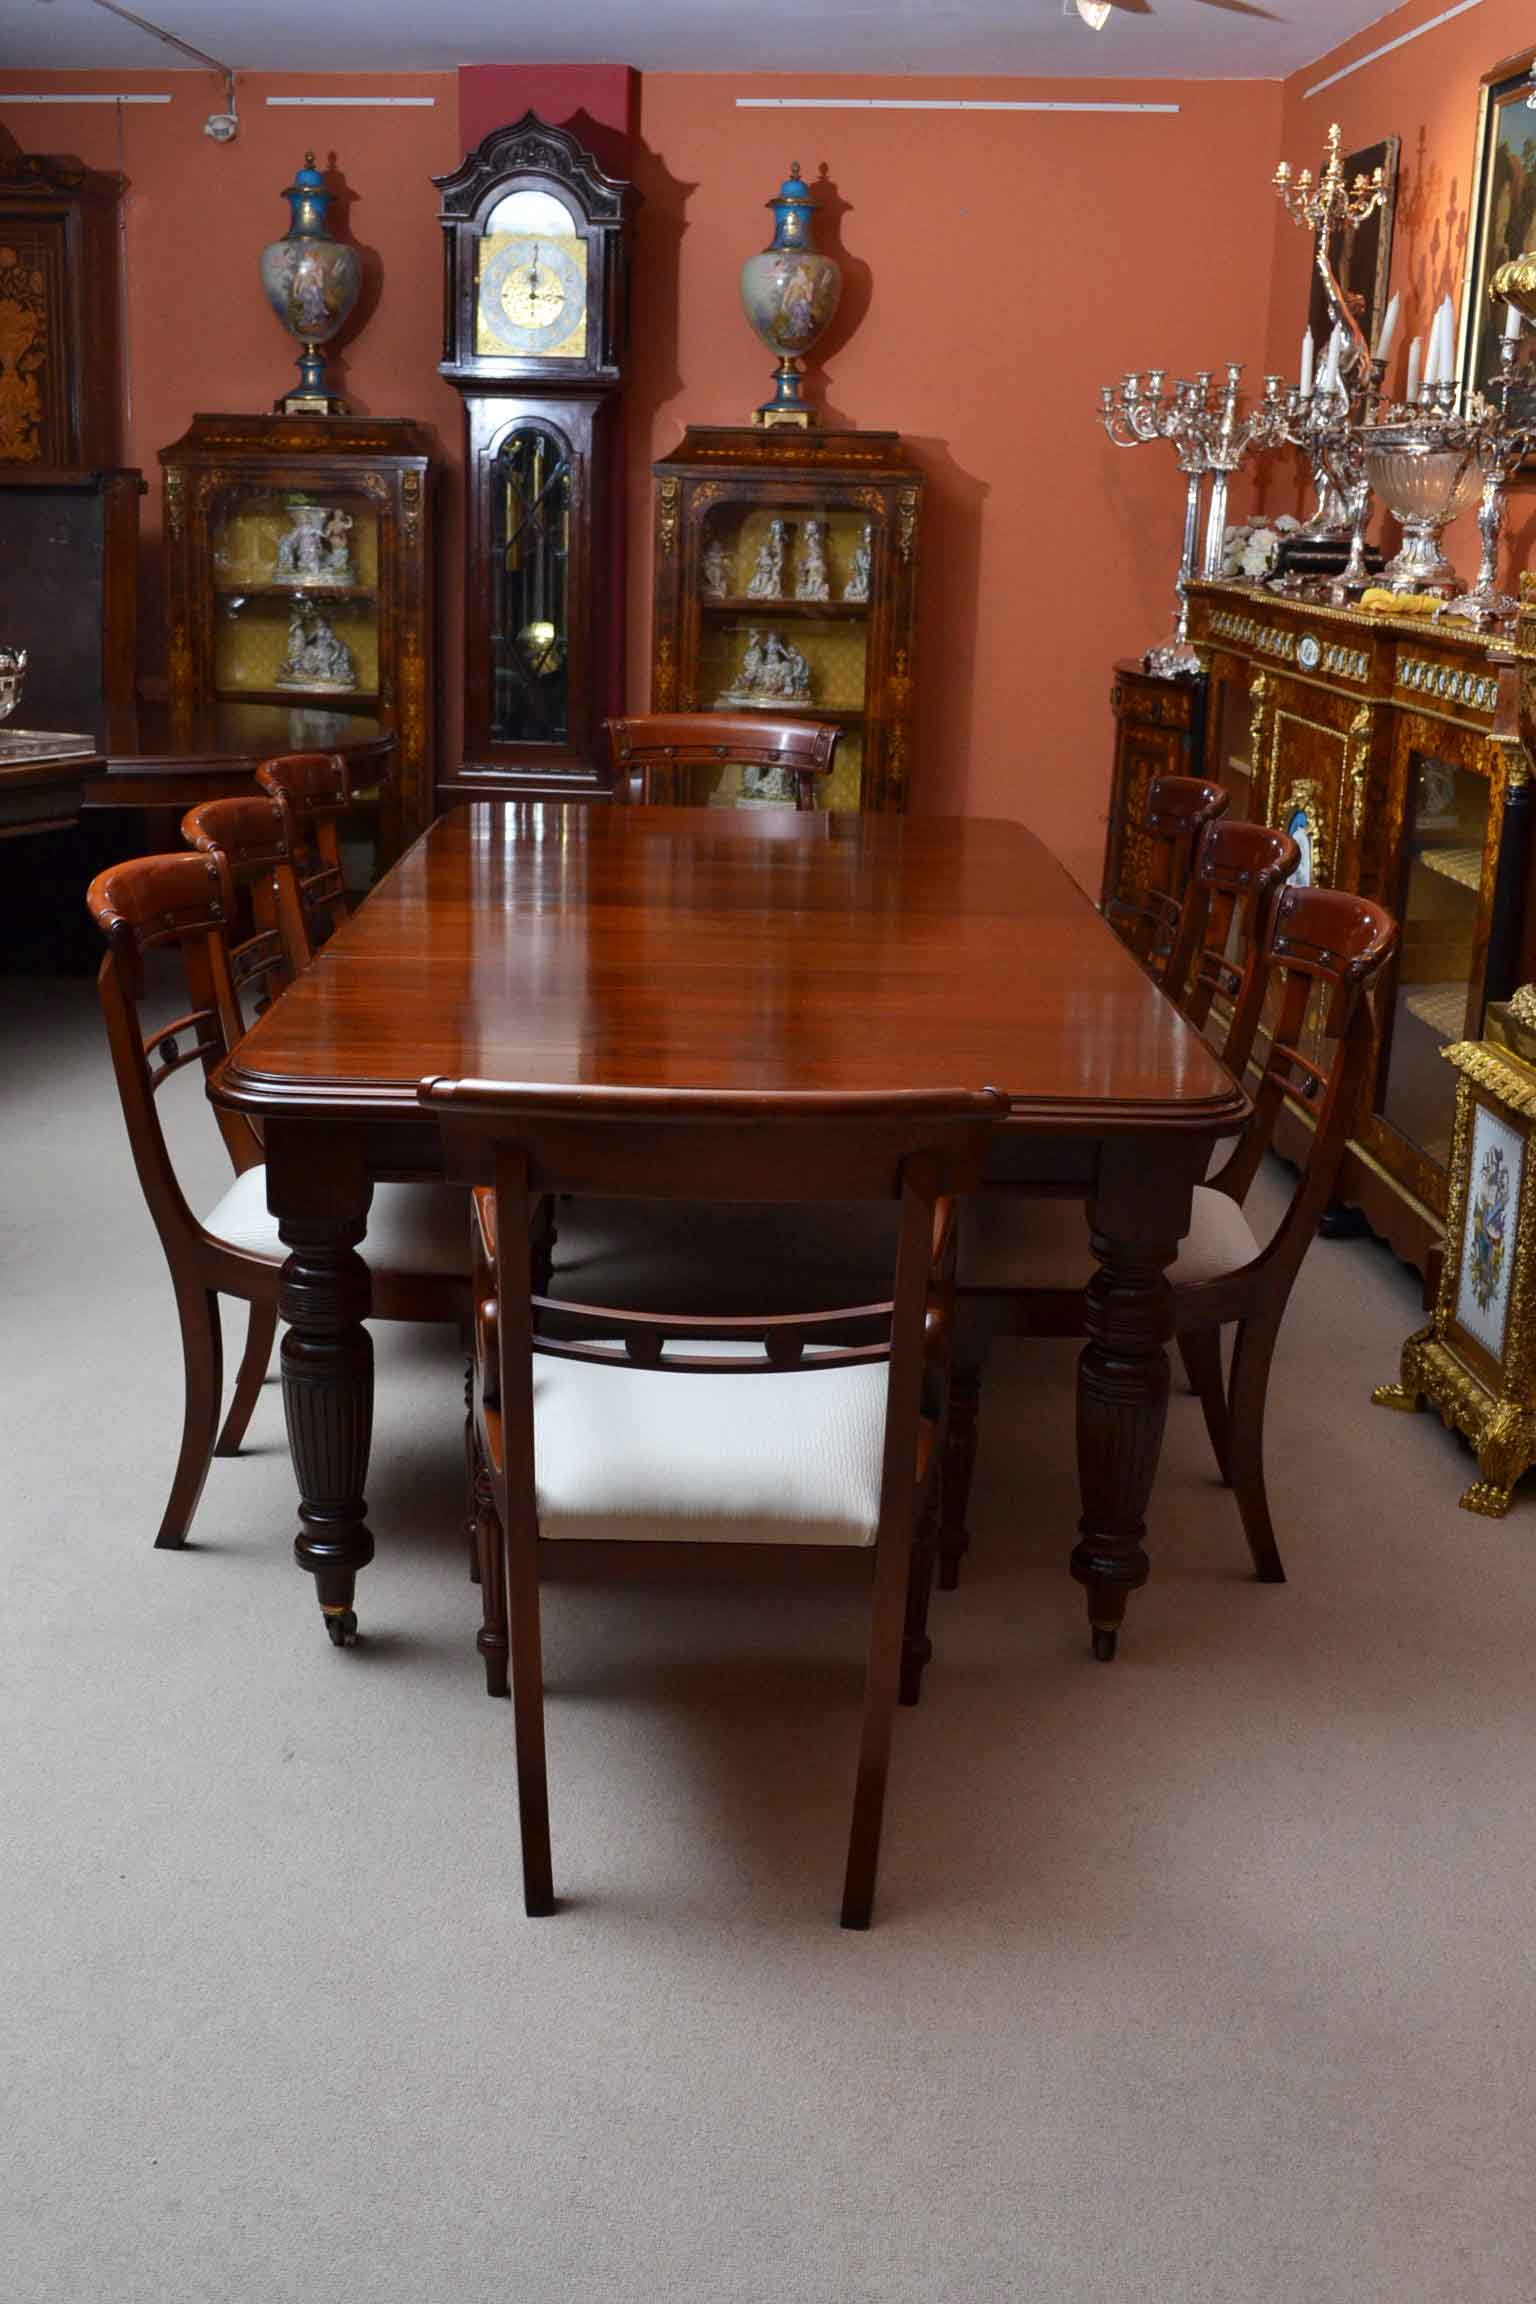 regent antiques dining tables and chairs table and chair sets antique victorian 8ft. Black Bedroom Furniture Sets. Home Design Ideas